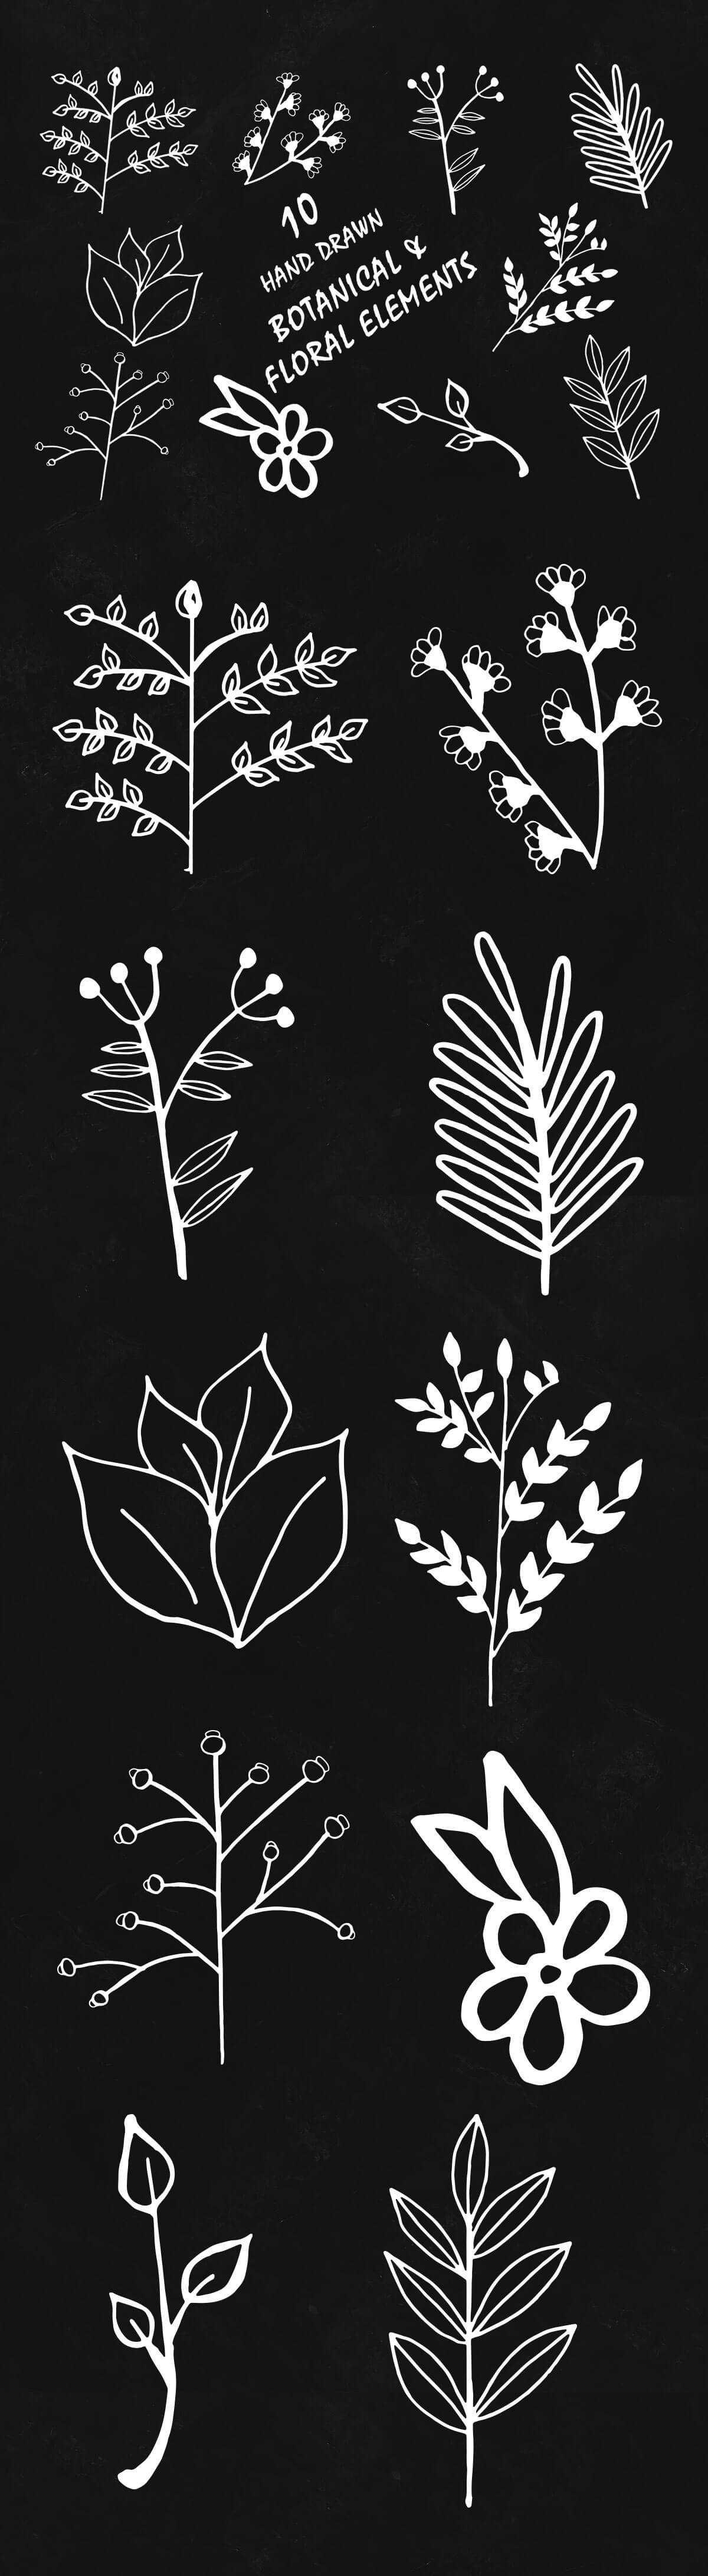 Free Handmade Botanical & Floral Elements